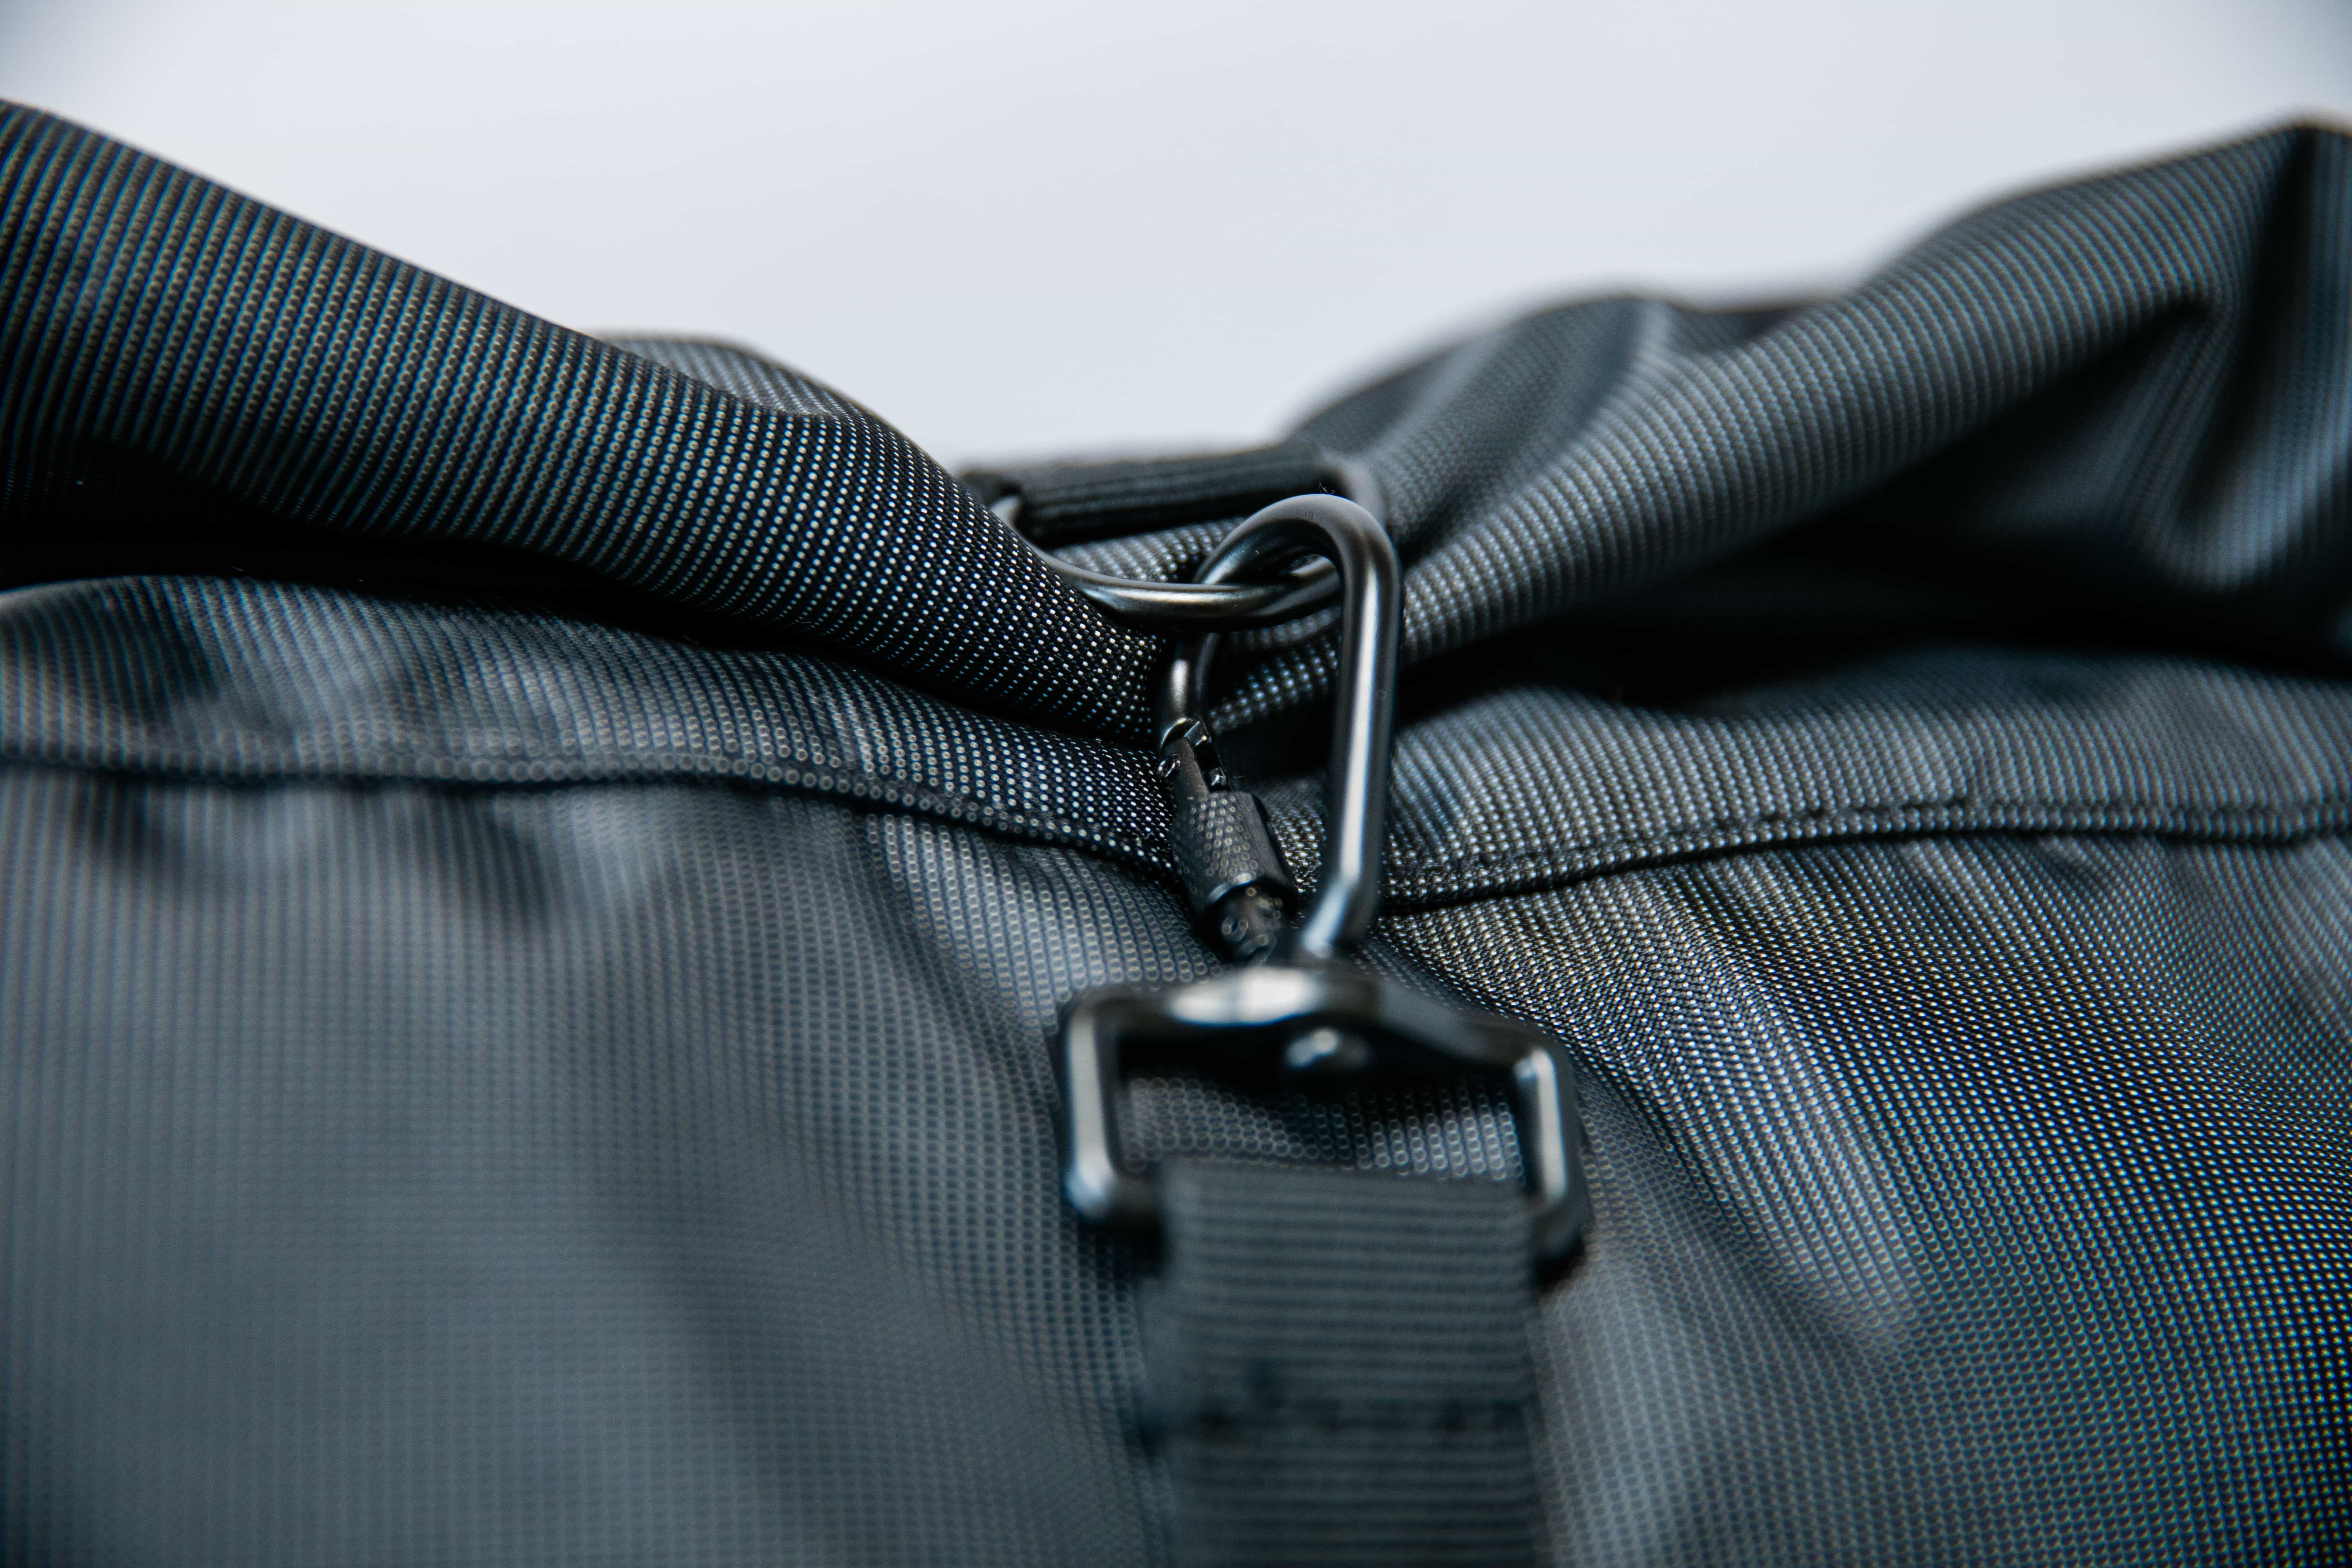 Carabiner closure on roll-top